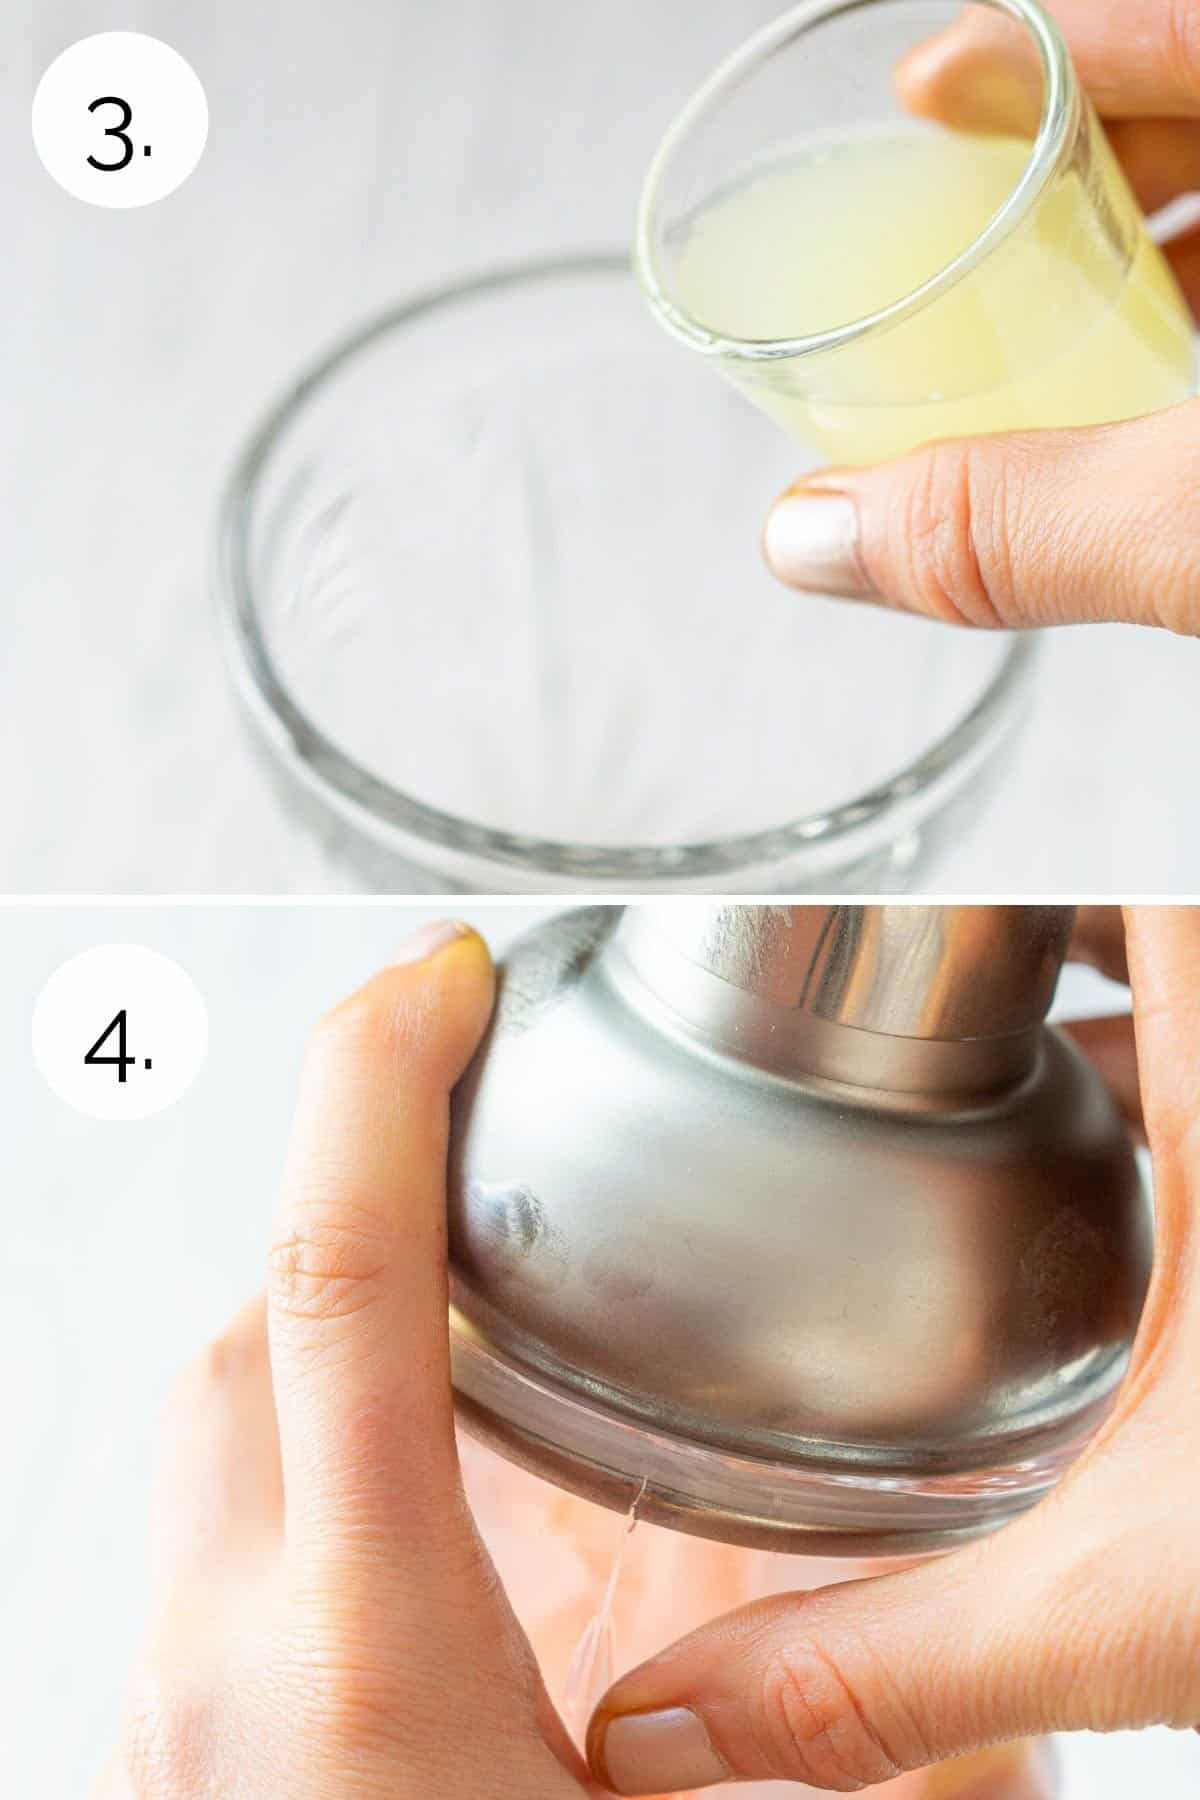 A collage showing adding the lime juice and then shaking until combined.